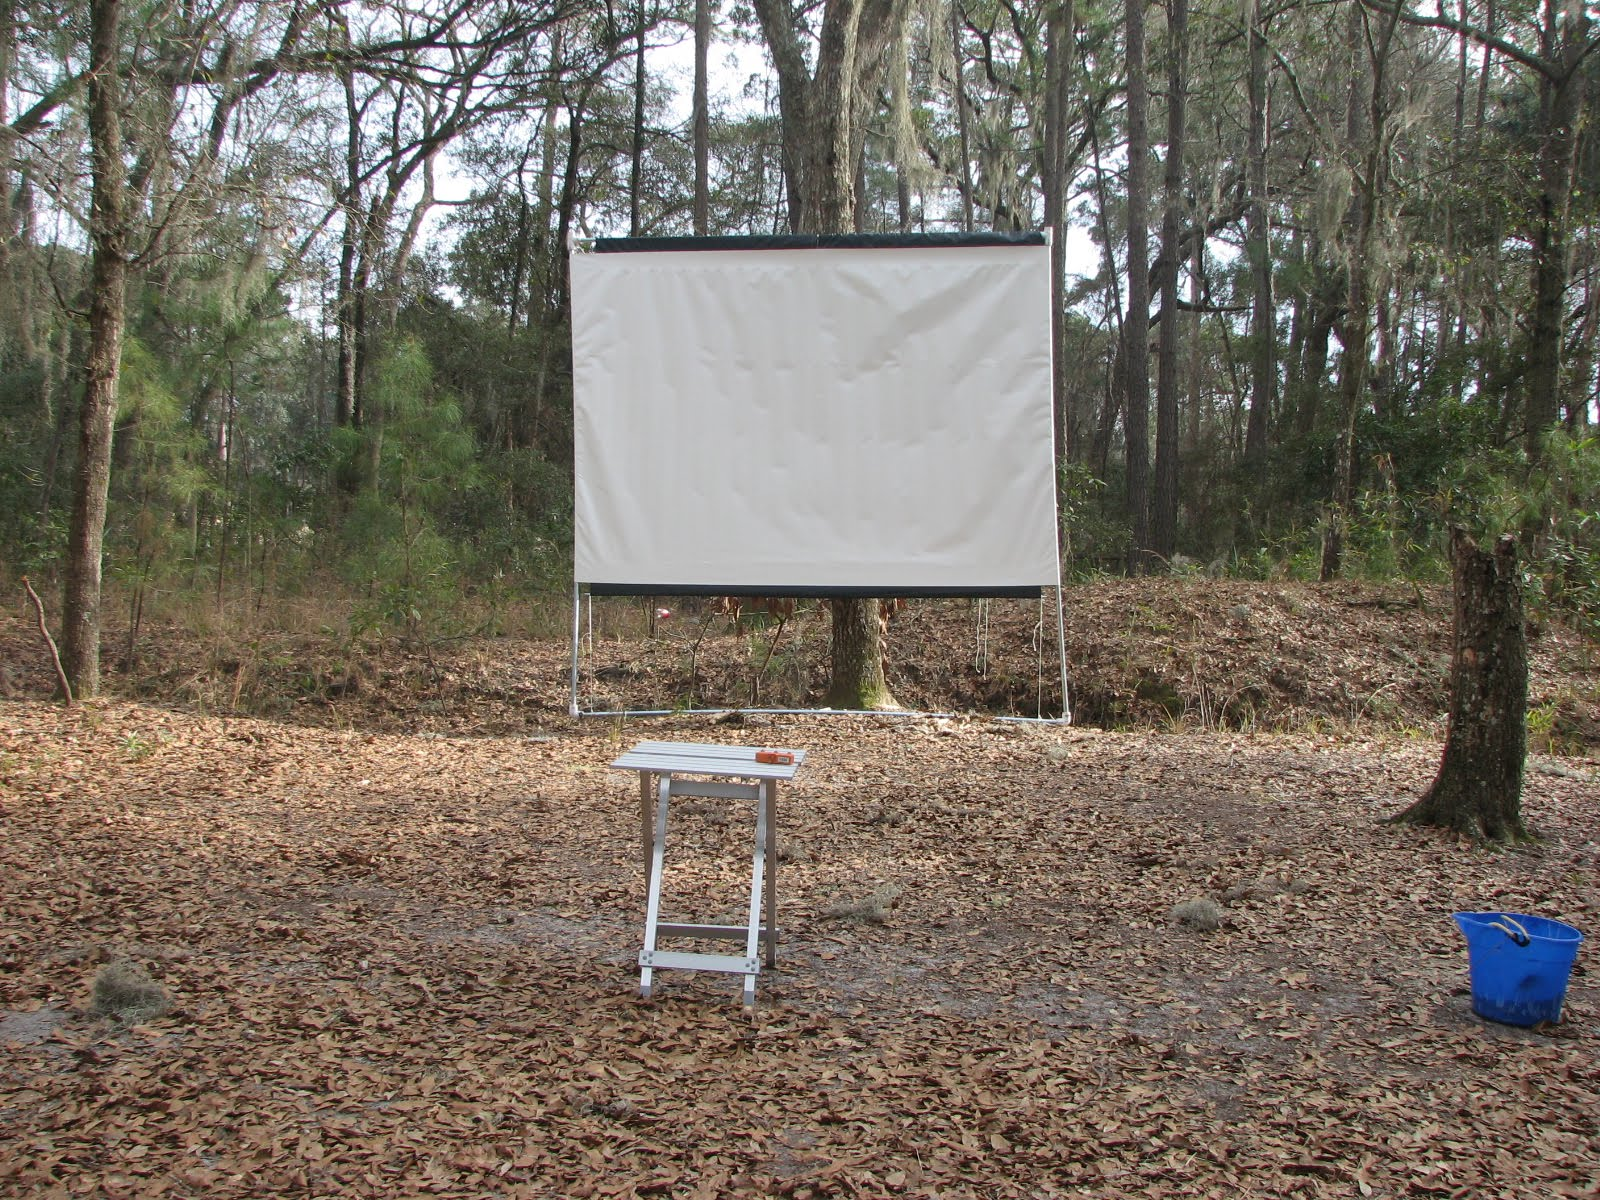 how to build an outdoor movie projector screen cheap